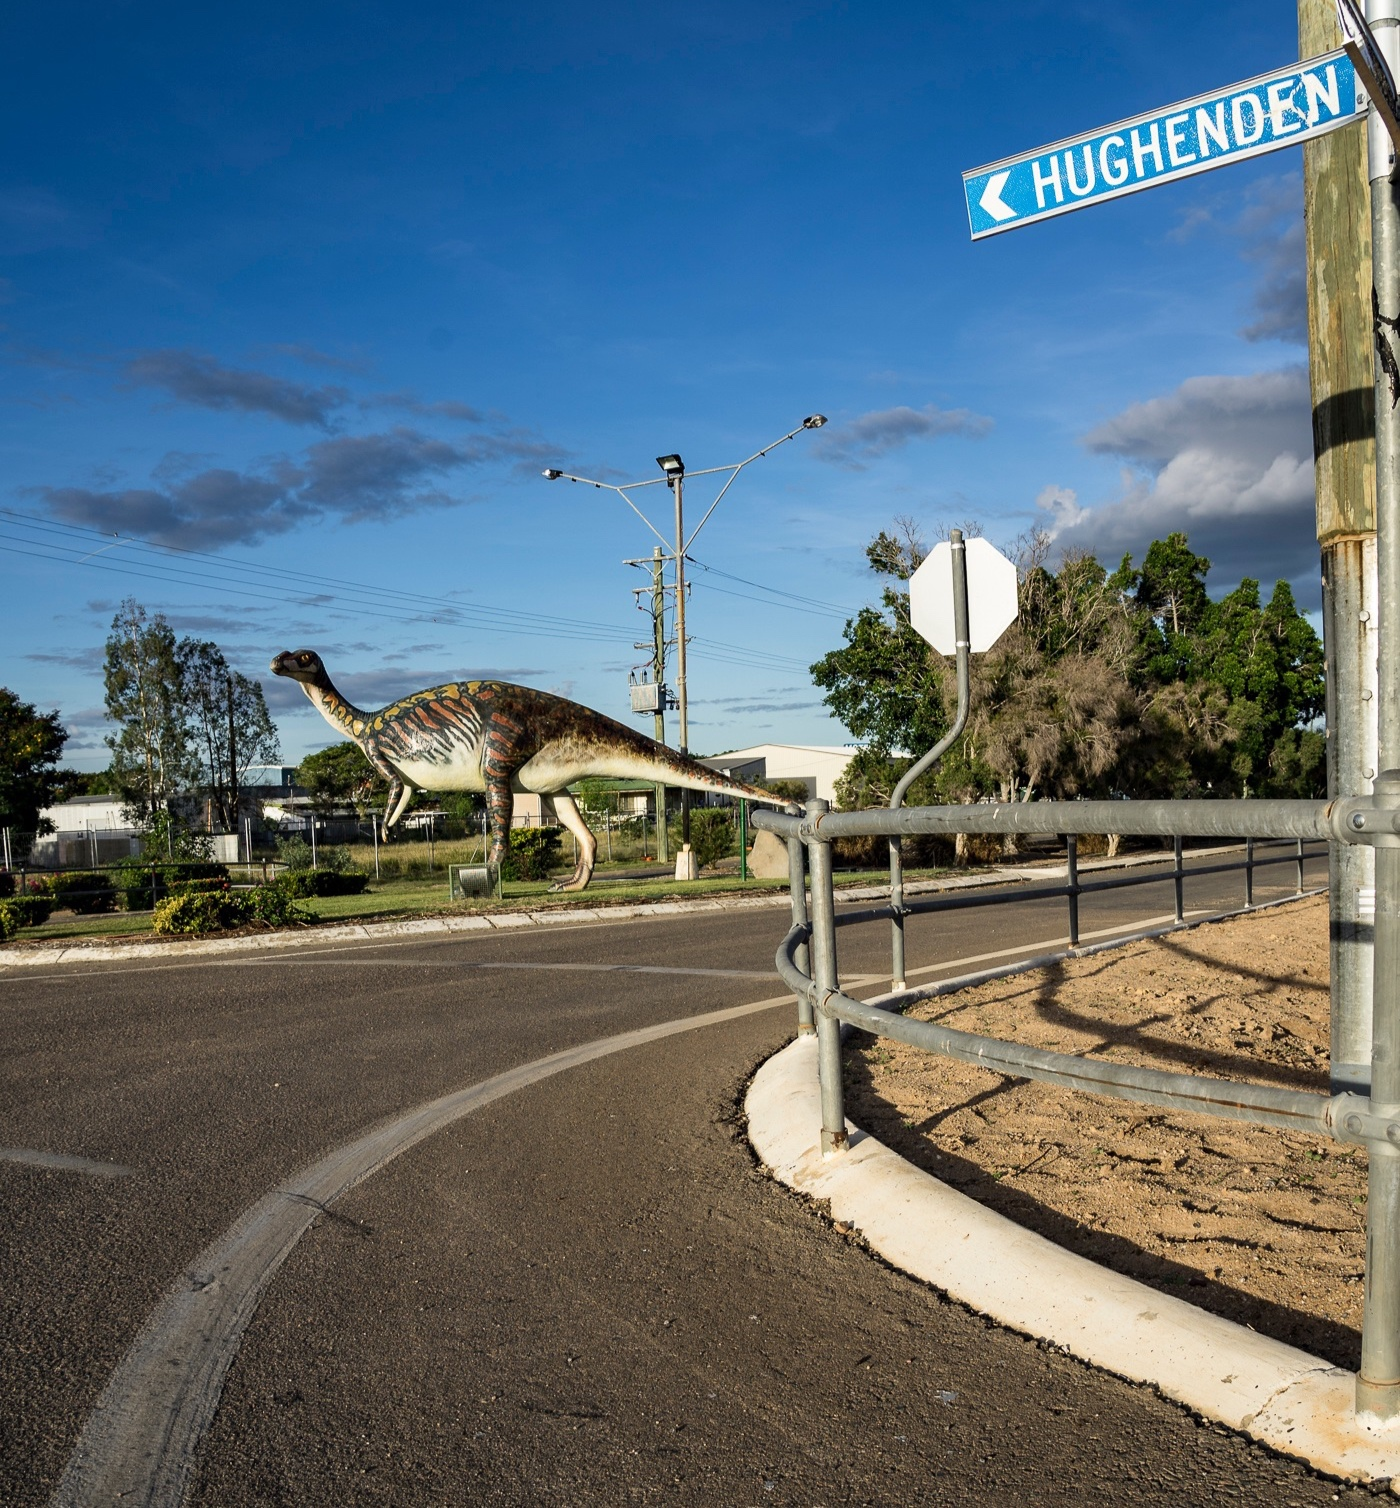 Main St in Hughenden, part of the Dinosaur Tourist Trail.